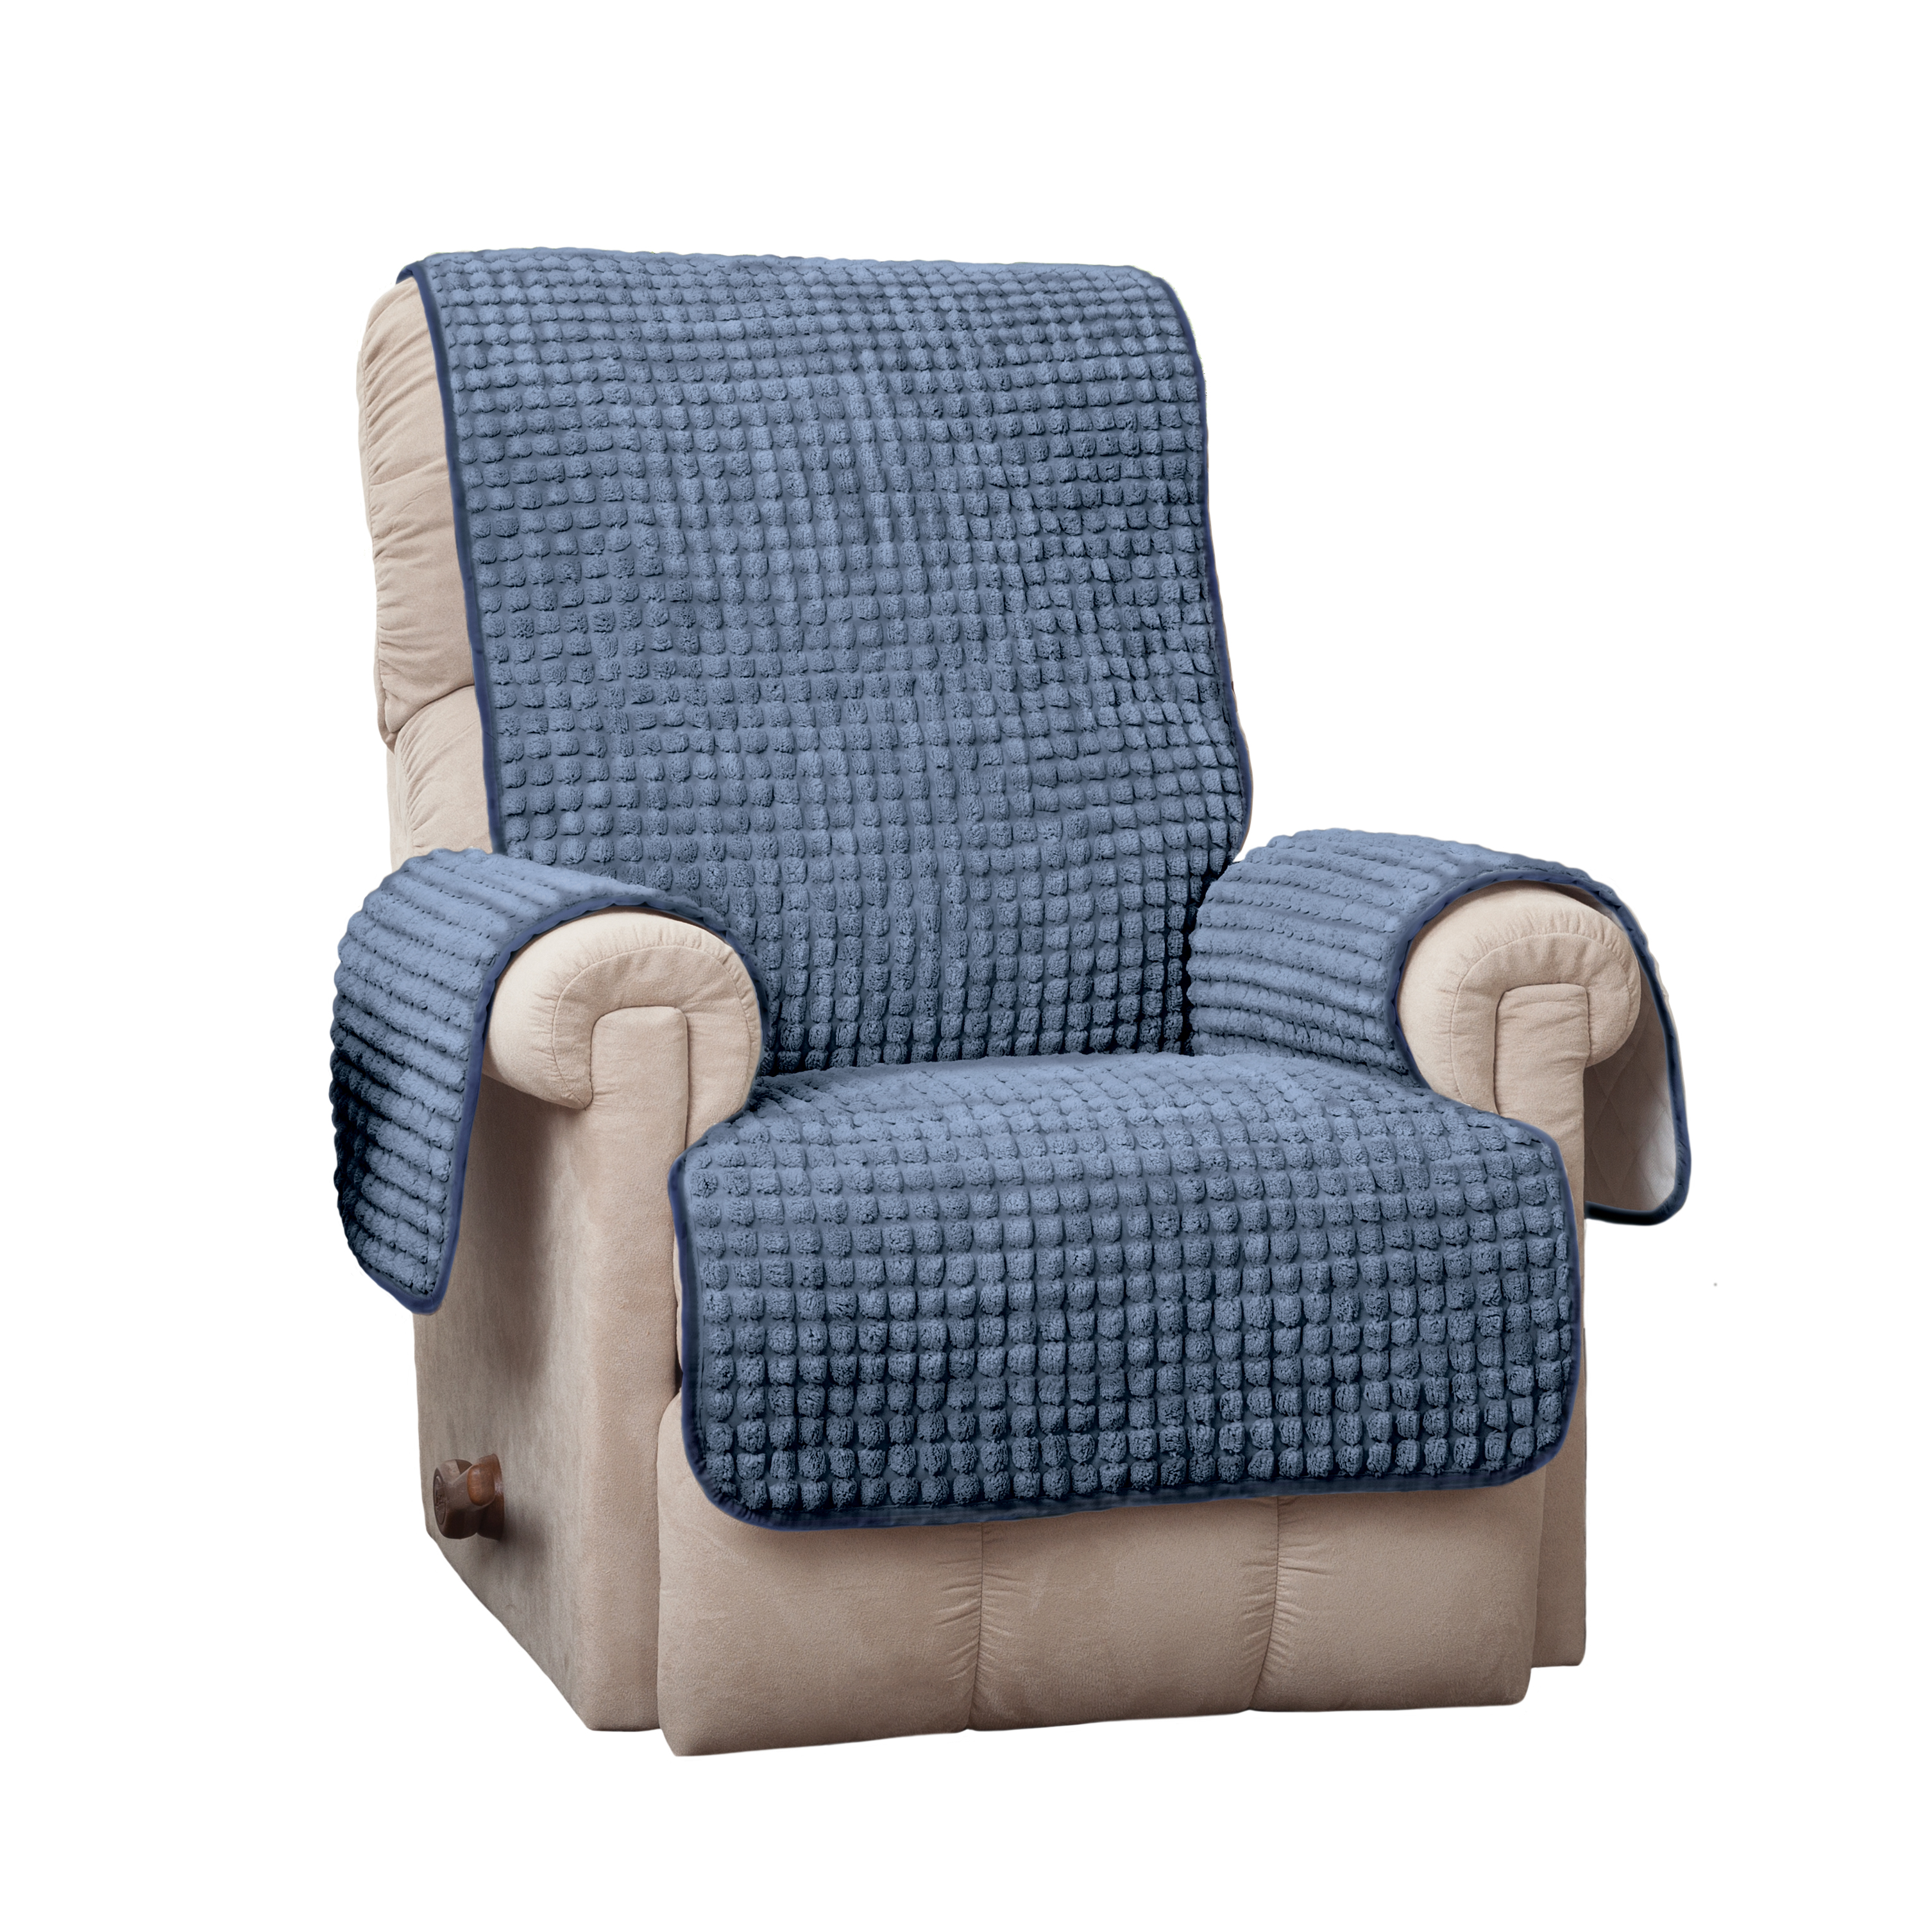 Innovative Textile Solutions Puff Recliner or Wing Chair Protector